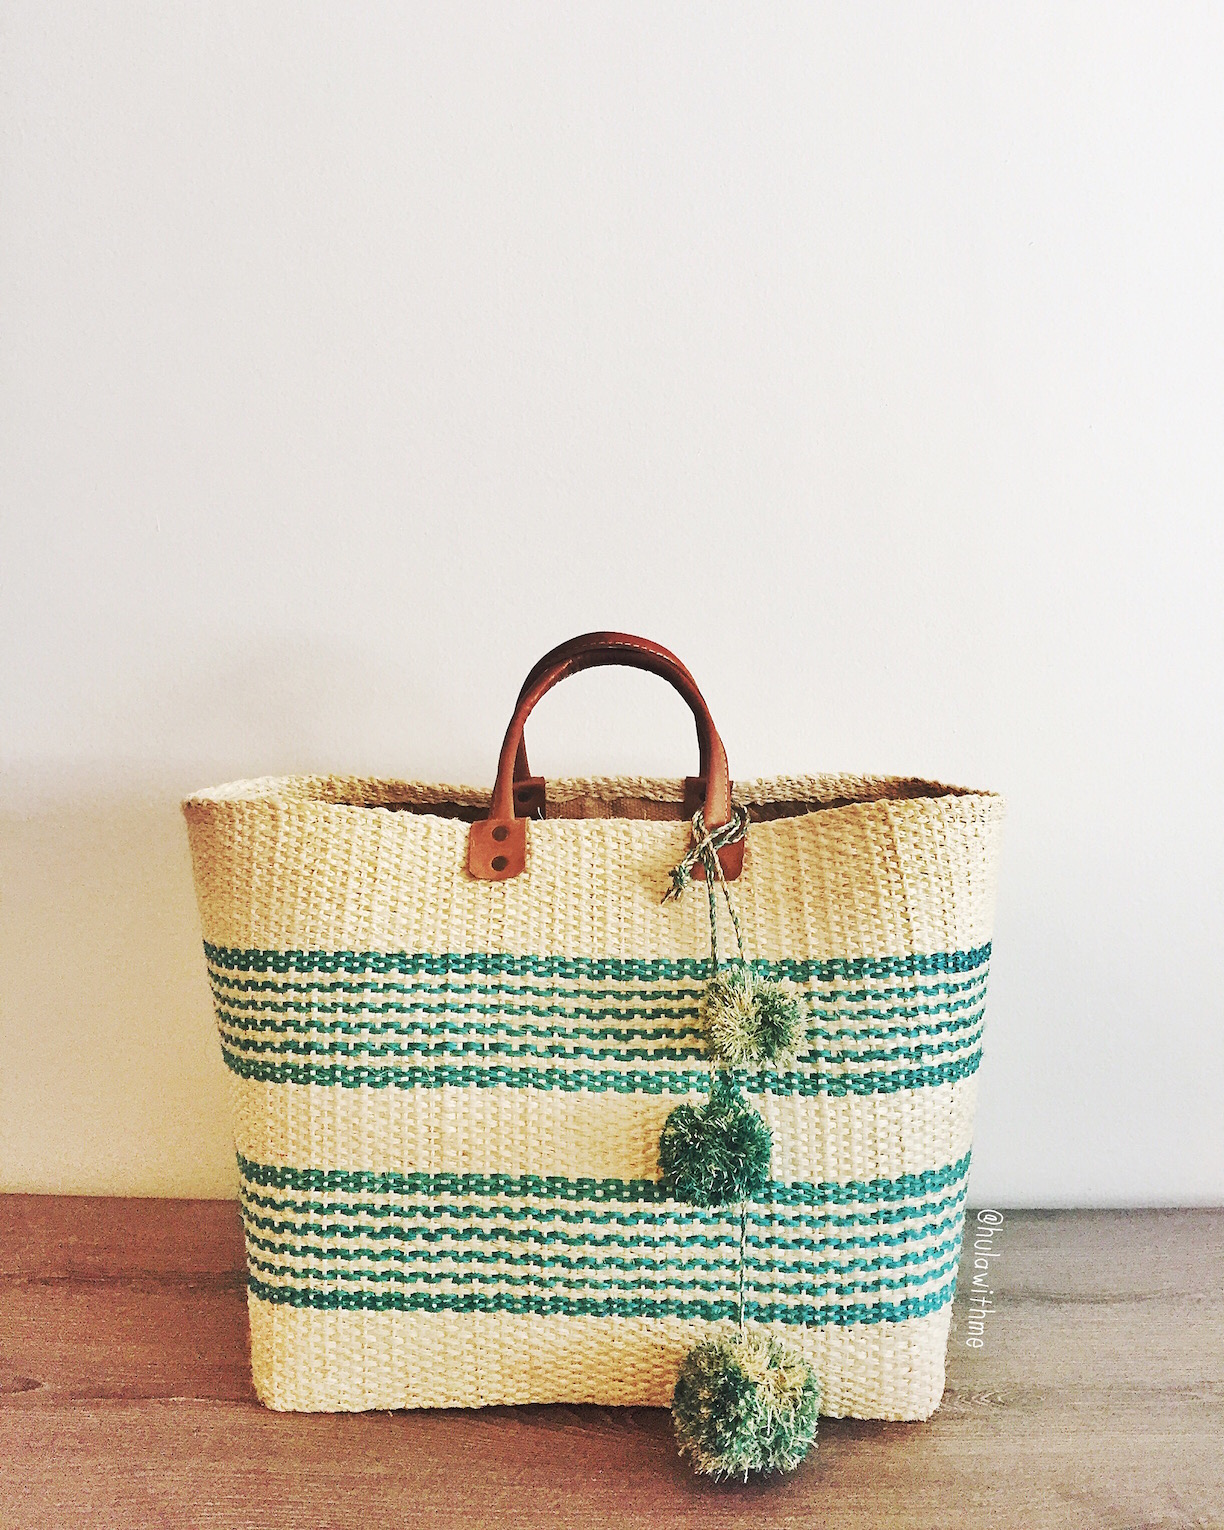 Summer vibe with Mar Y Sol tote bag.